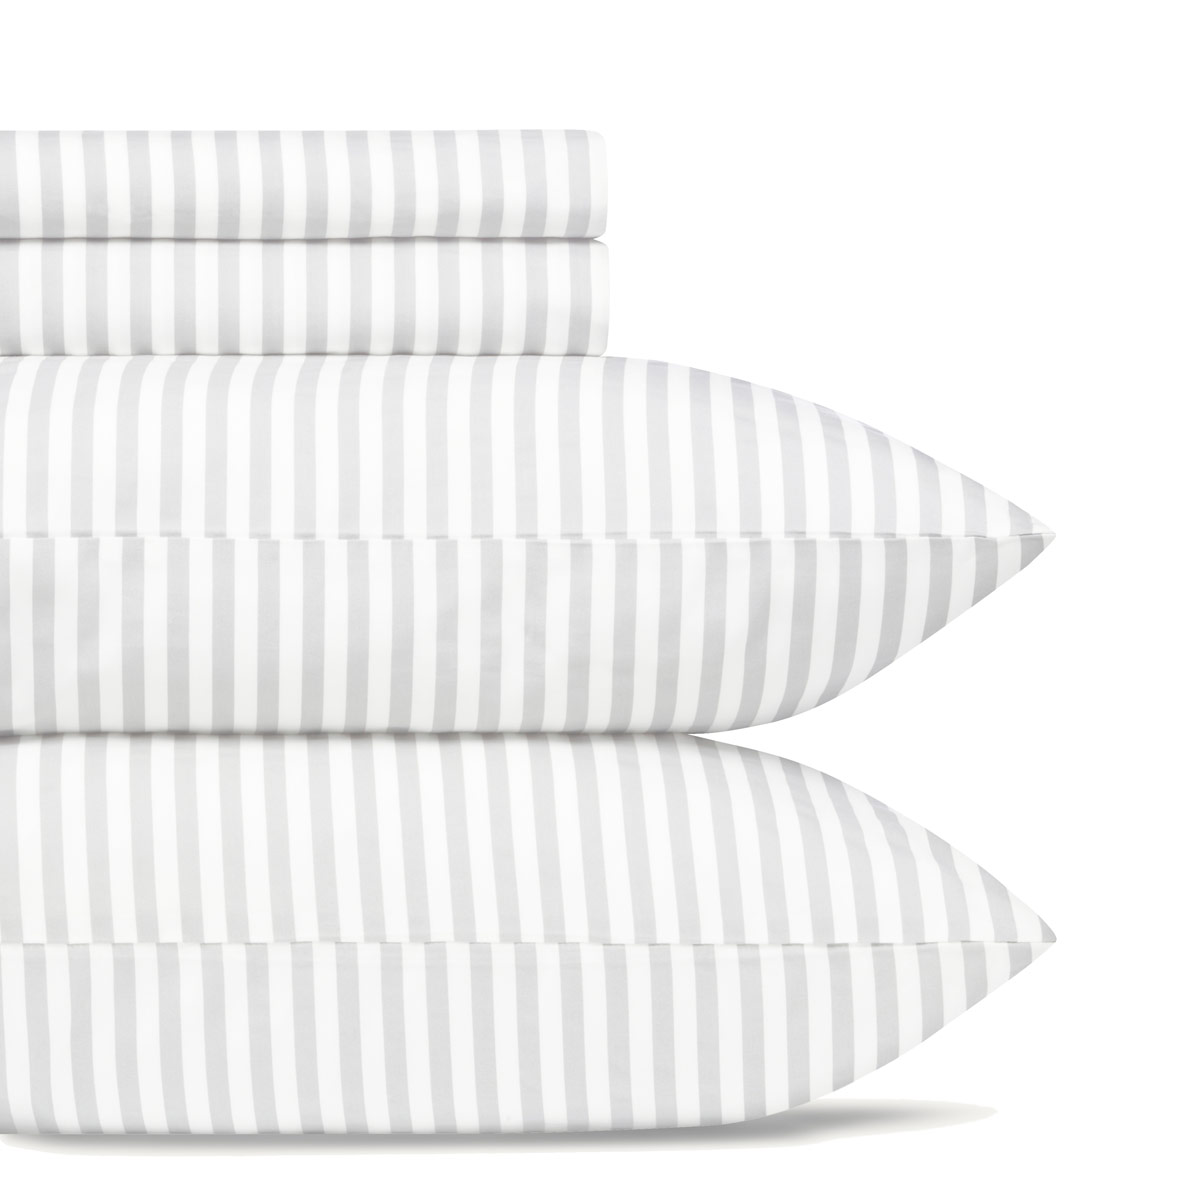 The sateen provides the perfect finishing touch to any sheet set. Threaded to Perfection We've constructed an optimal thread count to maximize softness while keeping the sheets lightweight, breathable and strong.